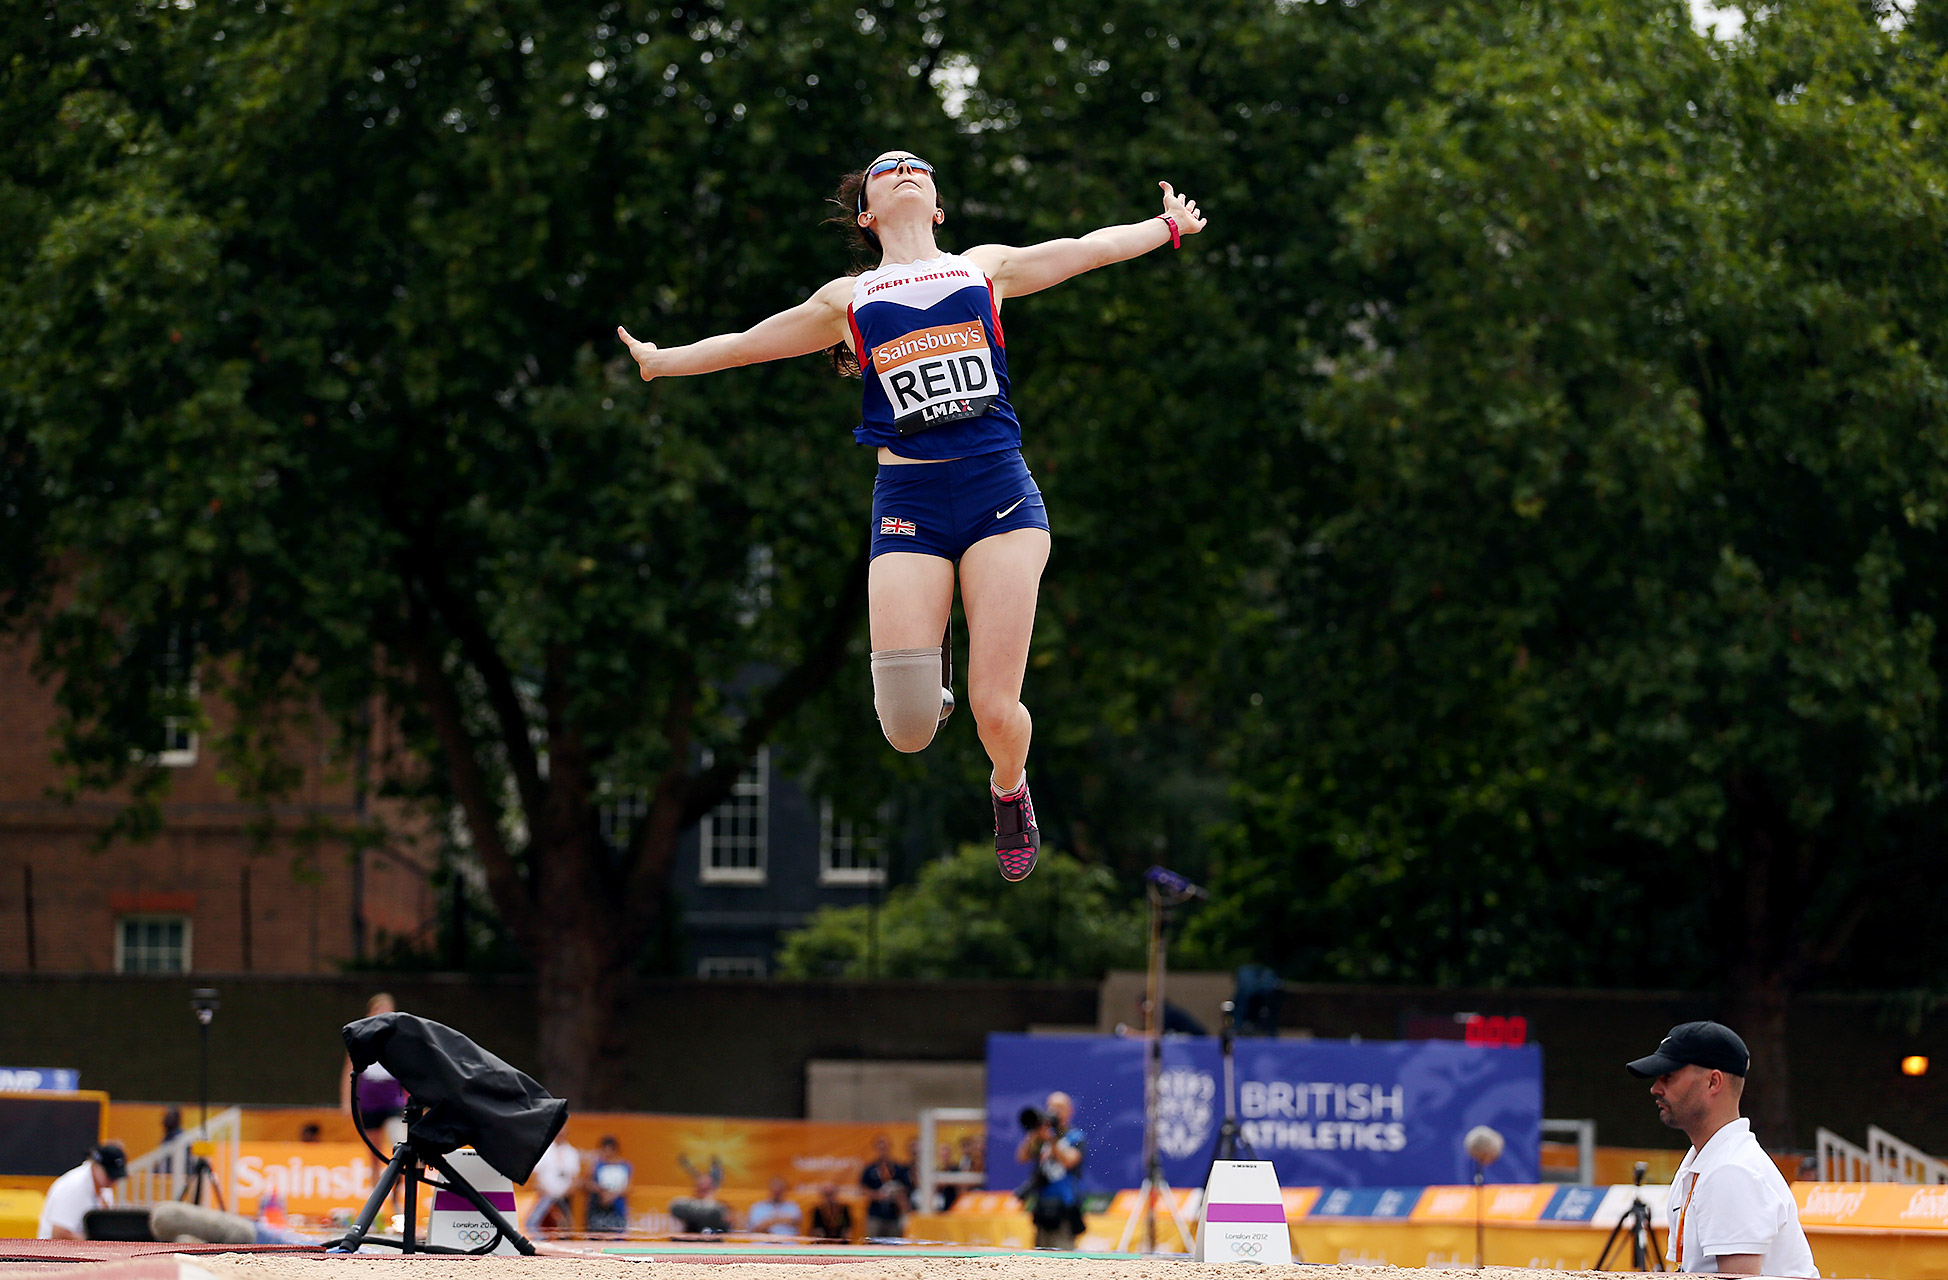 Great Britain's Stefanie Reid competes in the women's long jump T42/44 event during the Sainsbury's Anniversary Games at Horse Guards Parade in London.